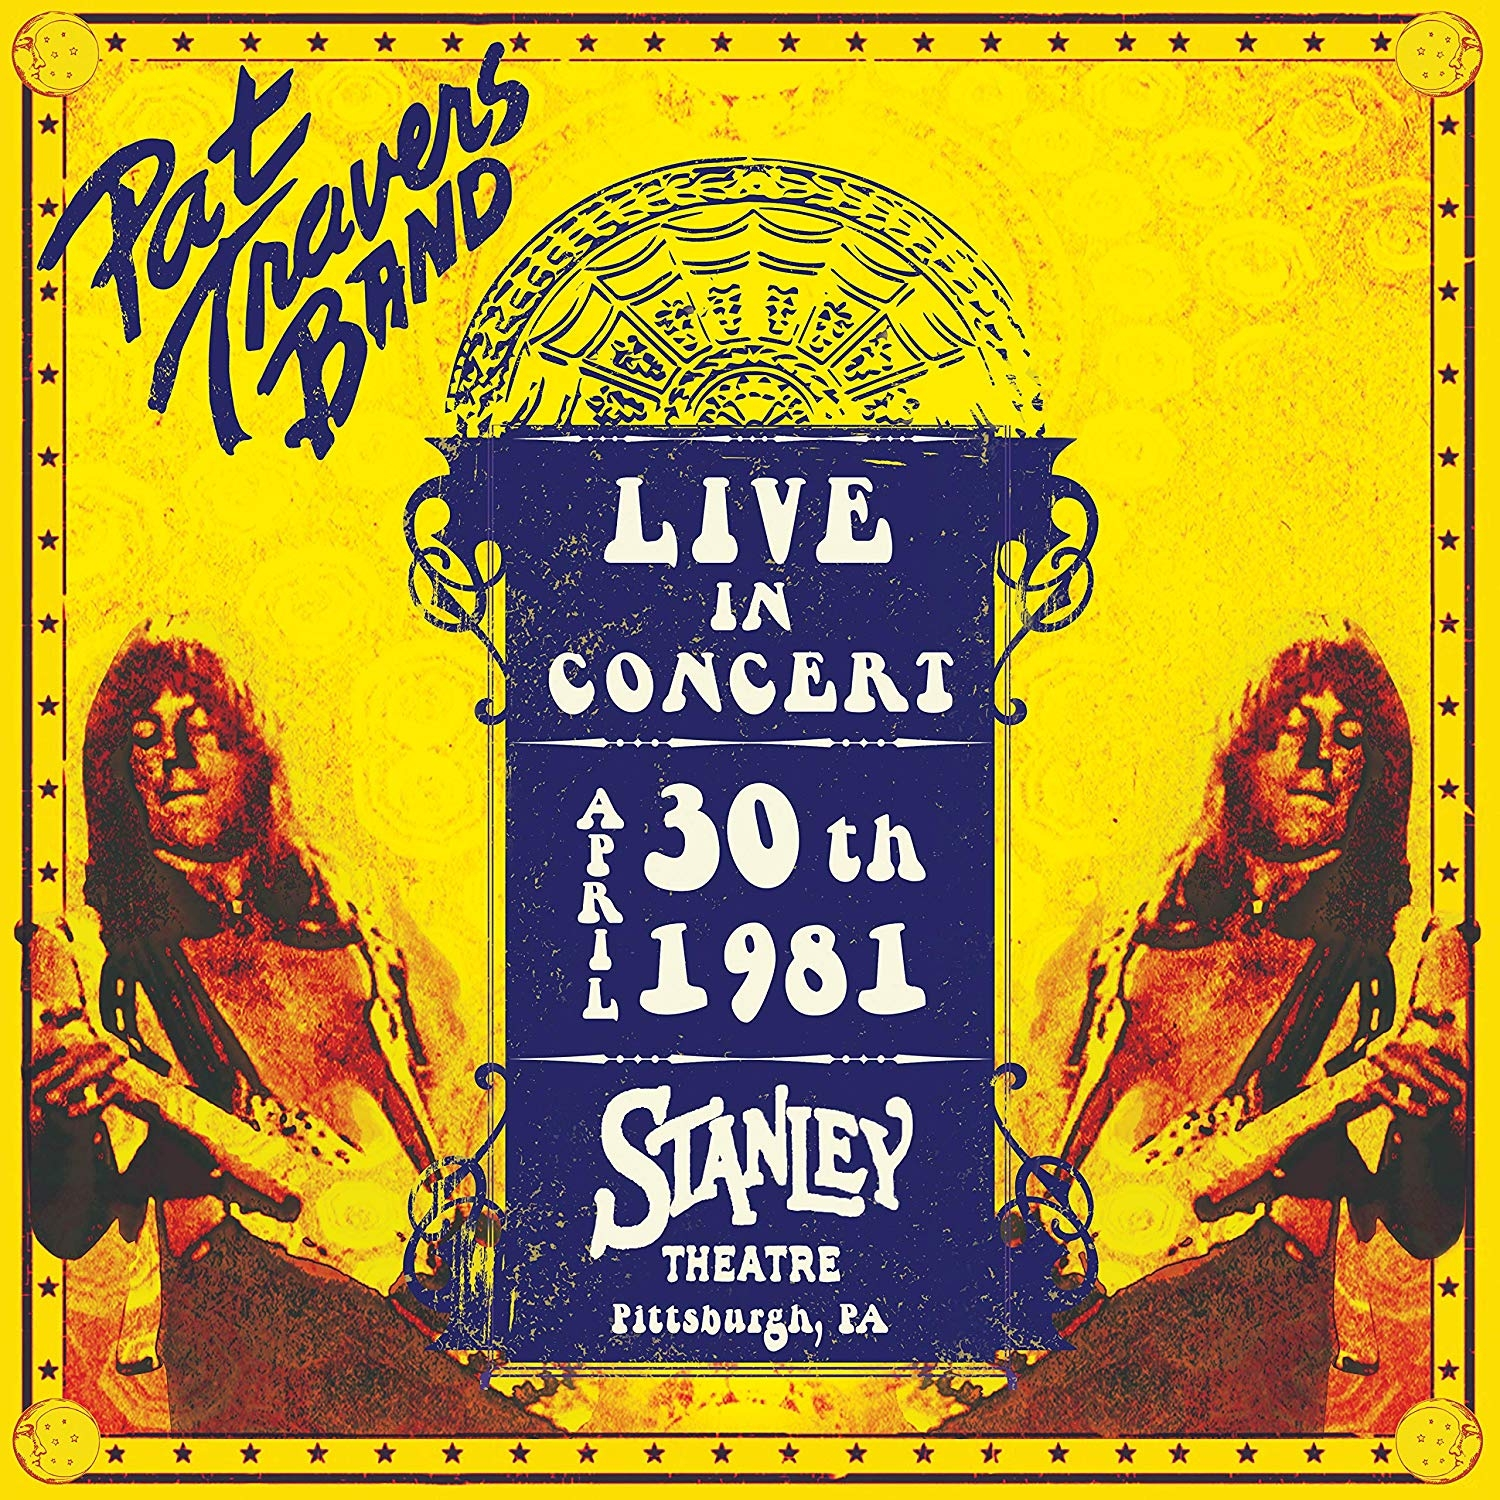 Live In Concert April 30th, 1981 - Stanley Theatre, Pittsburgh, PA